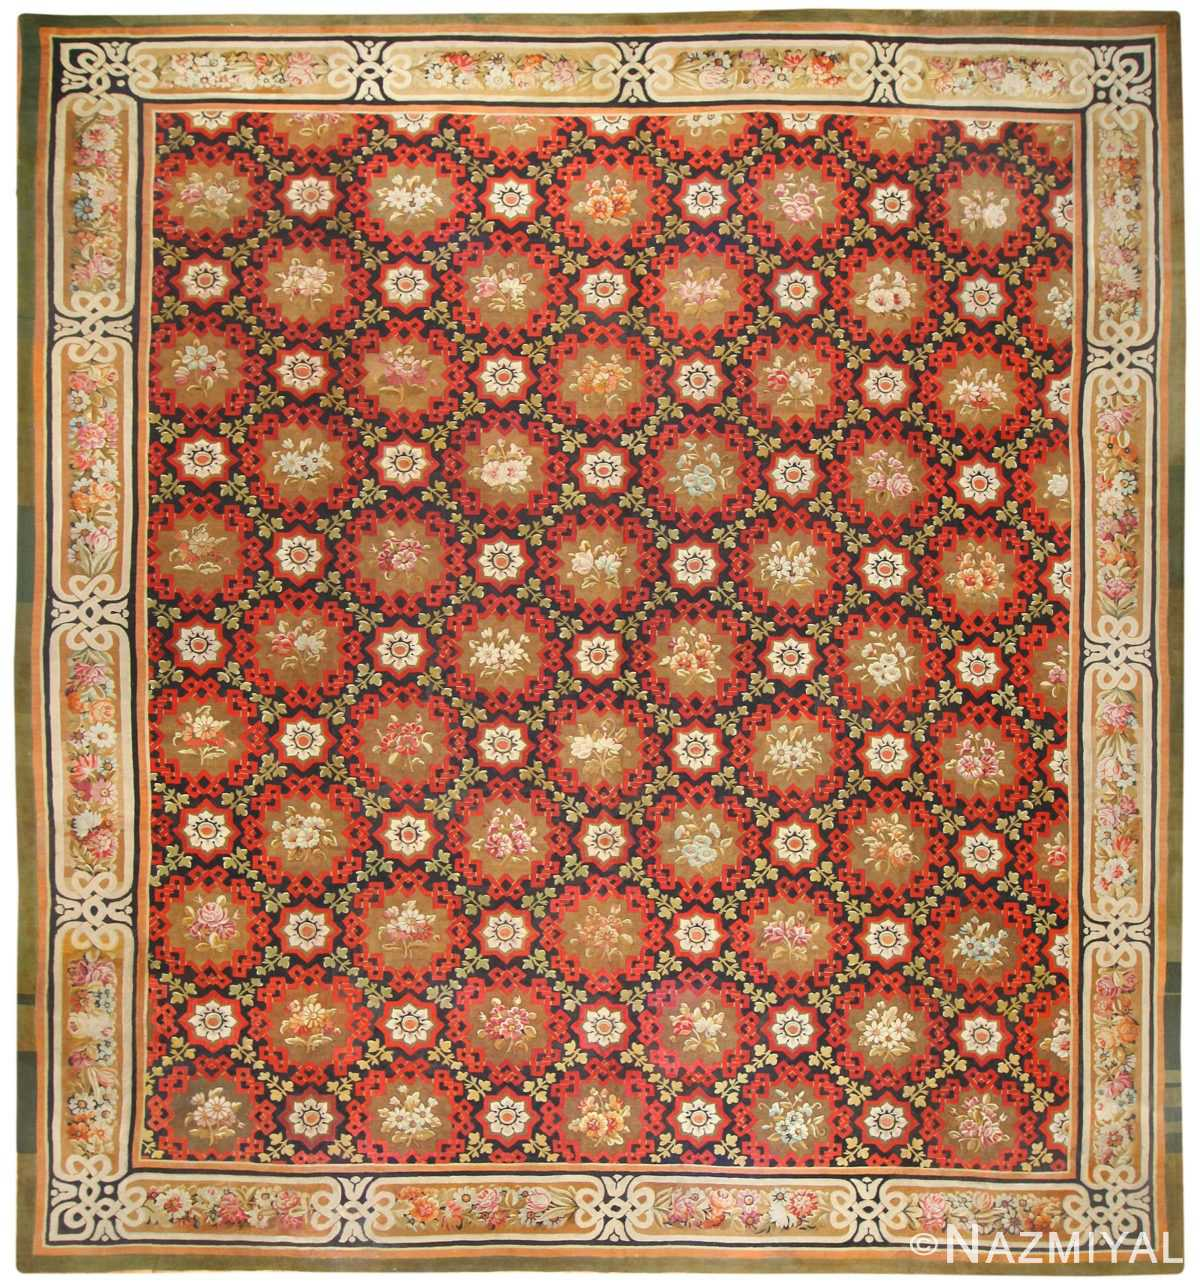 Antique French Aubusson Rug Circa 1850, 50143 Nazmiyal